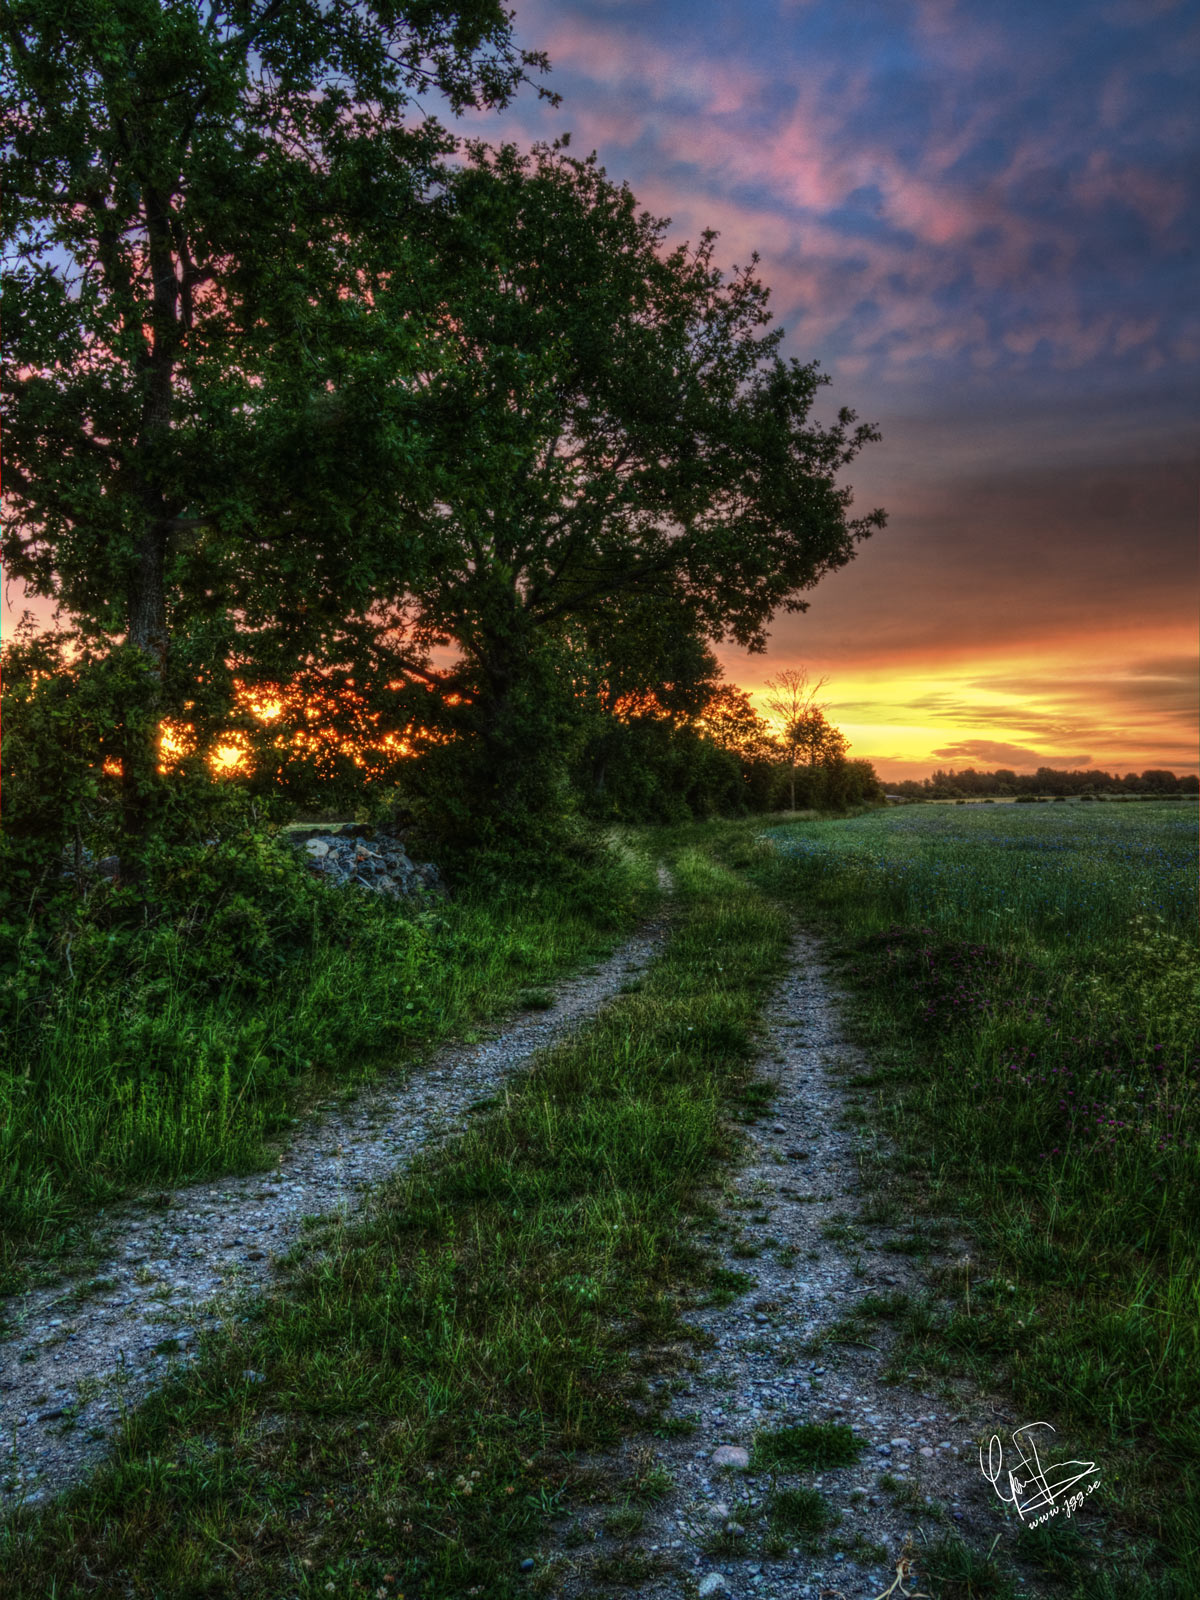 Road to a new day